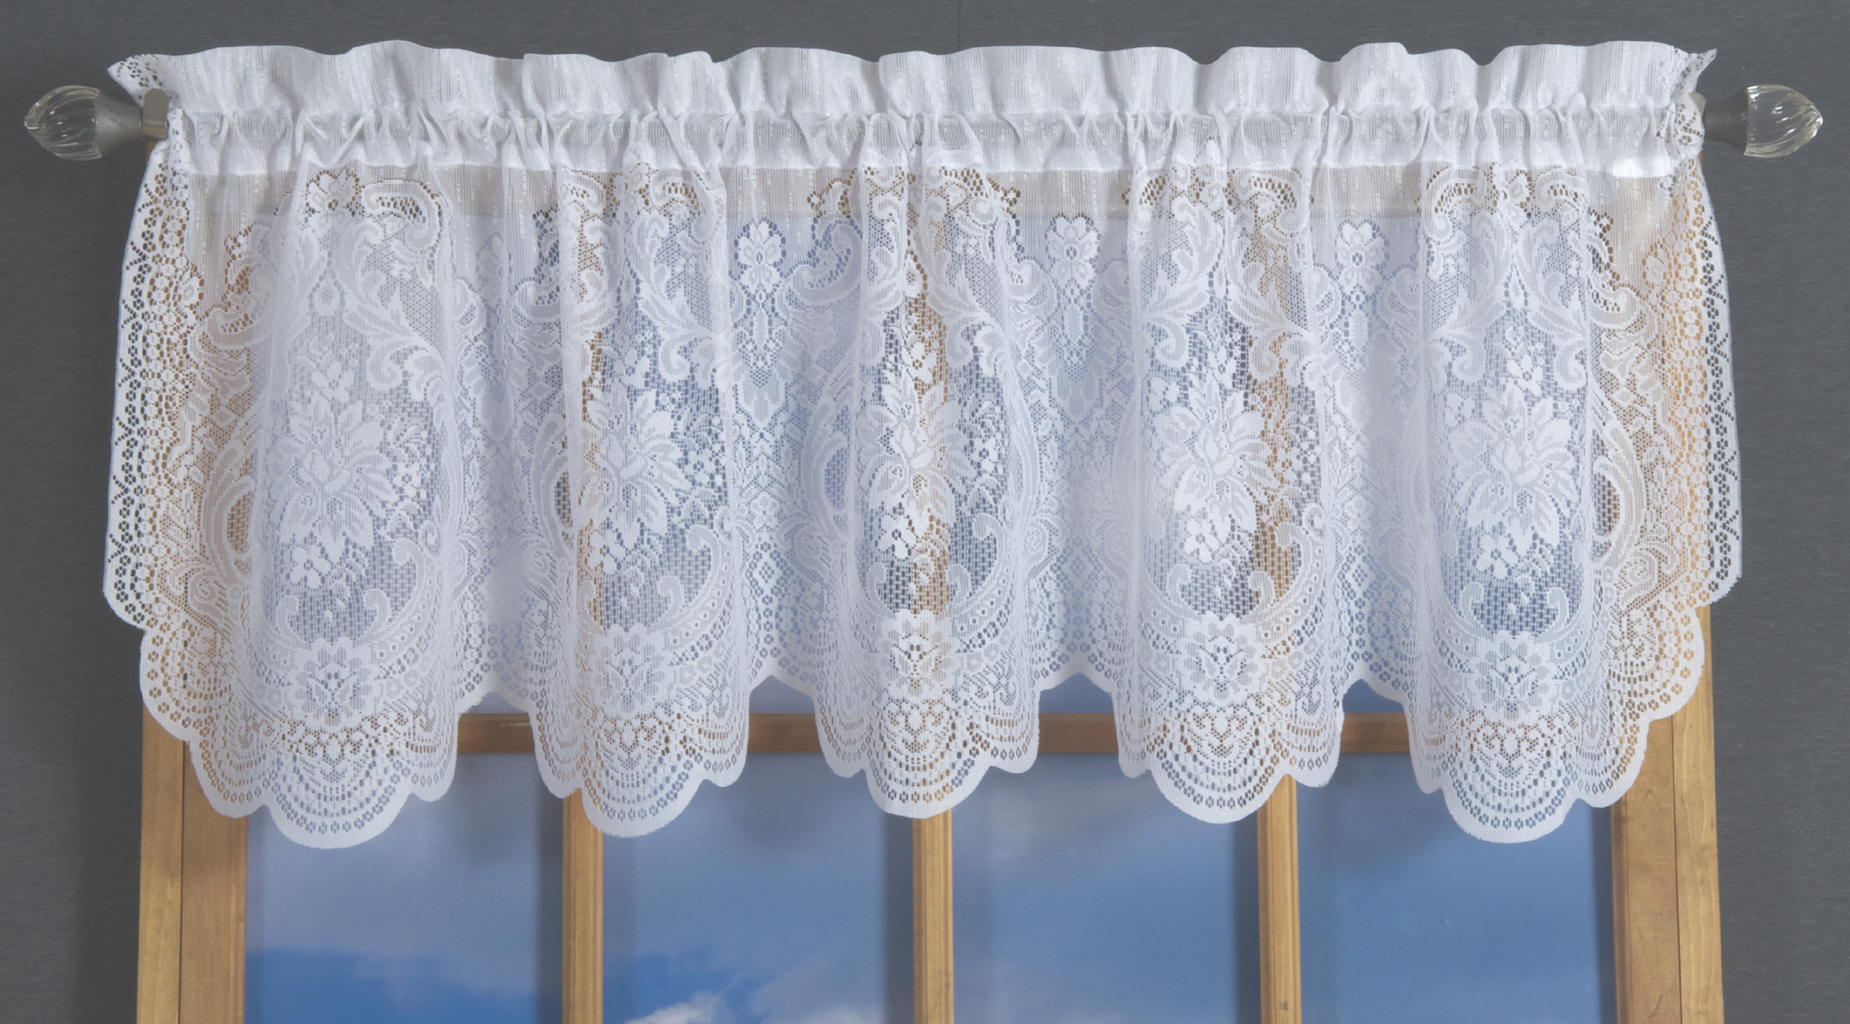 yankee curtain sturbridge workshop windows swag folk valance ecru lace curtains collection for valances